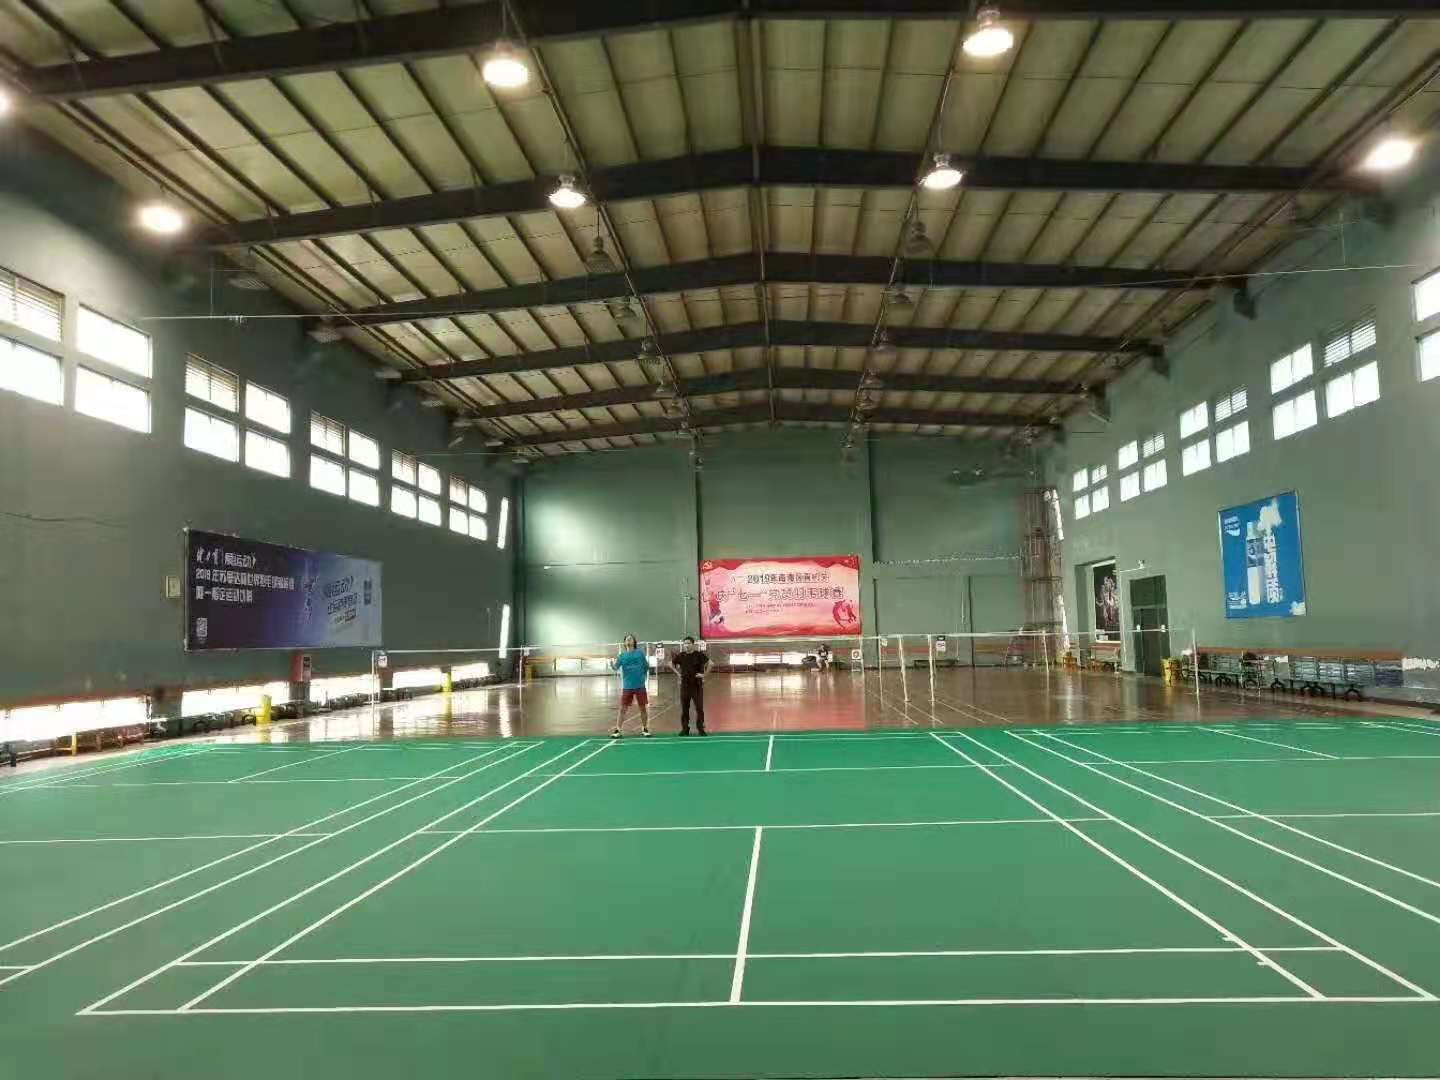 synthetic surfaces are ideal for badminton courts at professional standard level